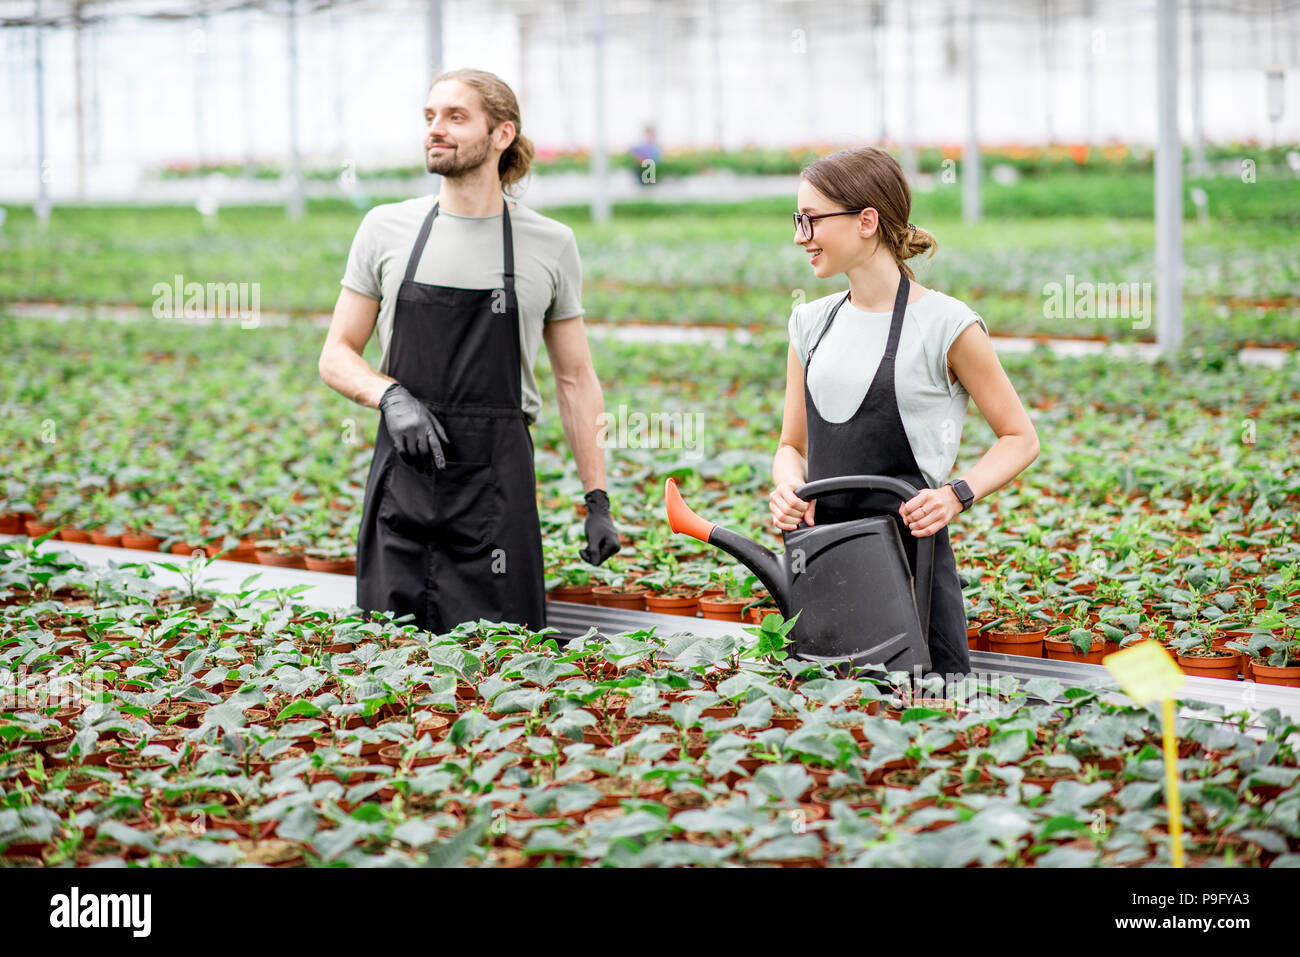 Workers at the plant production greenhouse - Stock Image